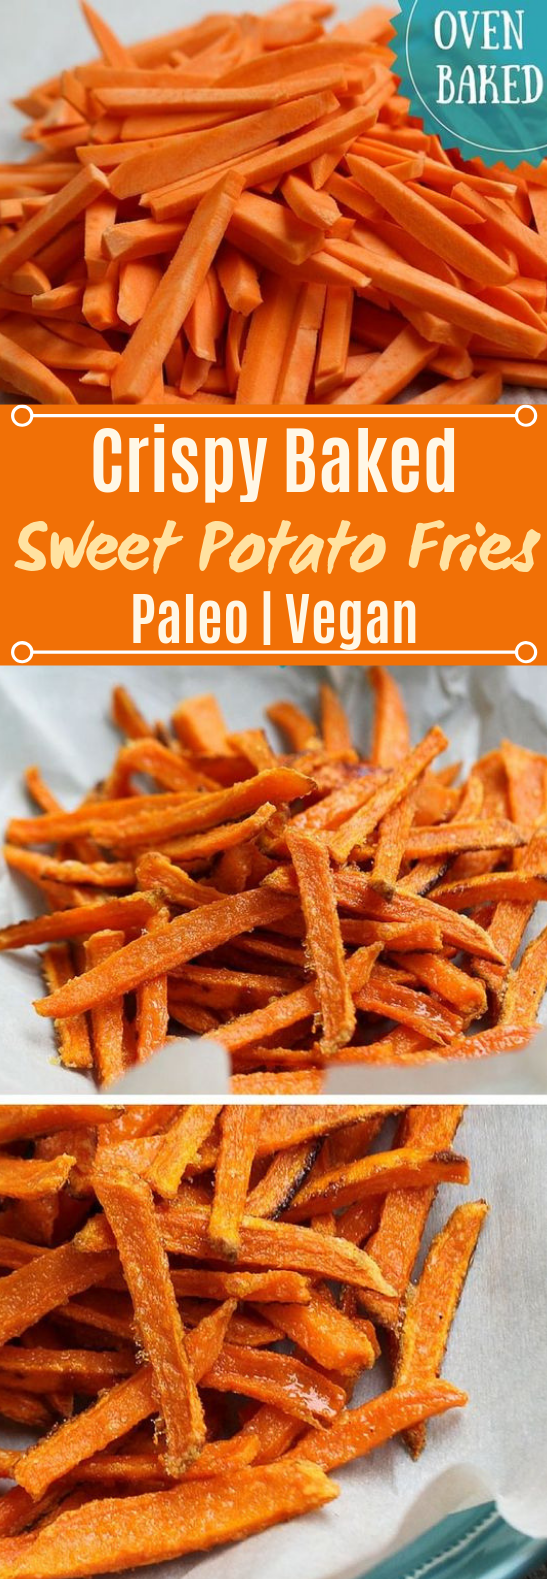 Crispy Oven Baked Sweet Potato Fries #healthy #vegan